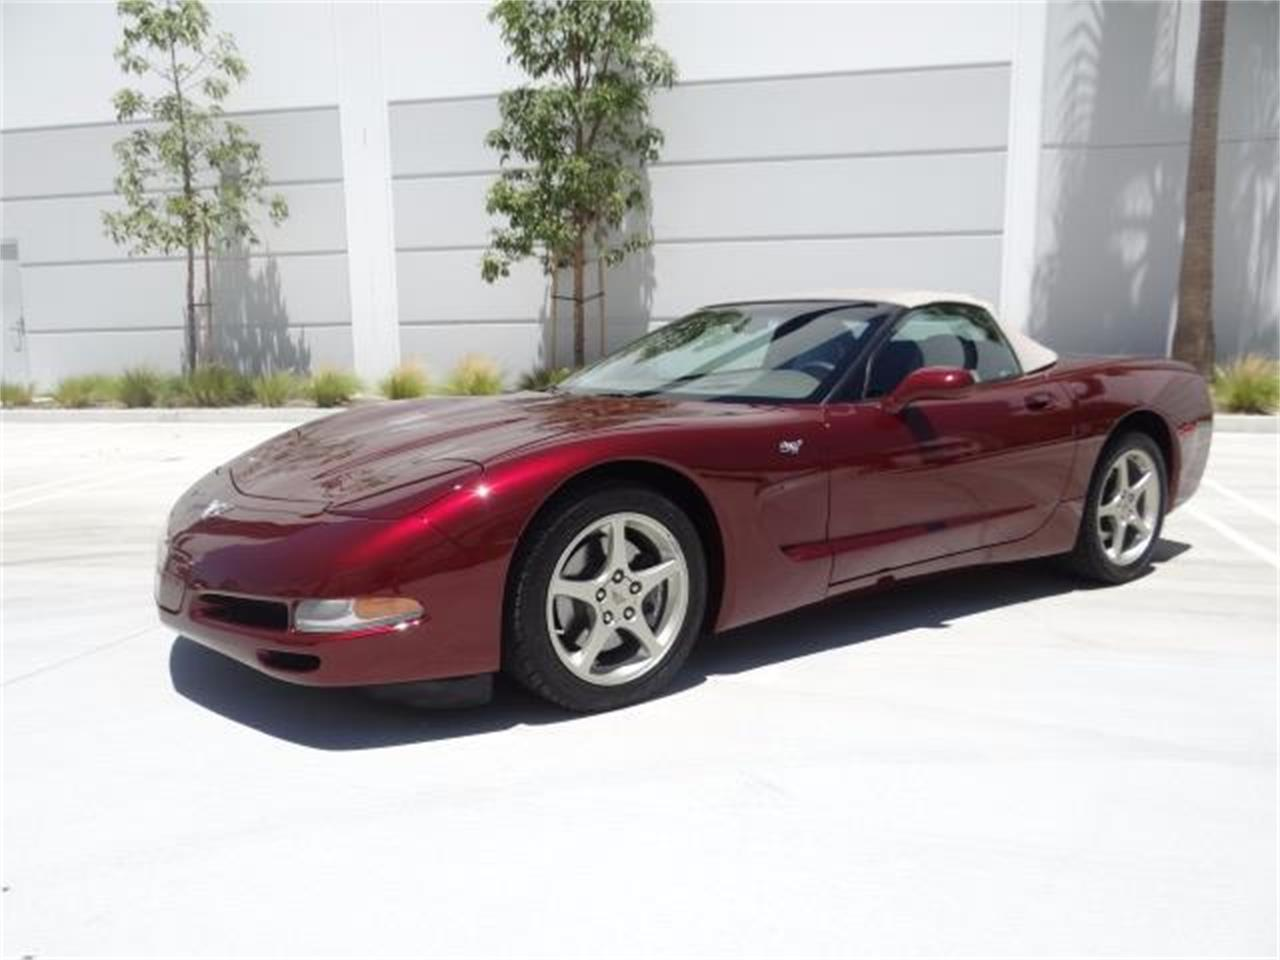 Large Picture of 2003 Corvette - $30,000.00 Offered by West Coast Corvettes - LCV7